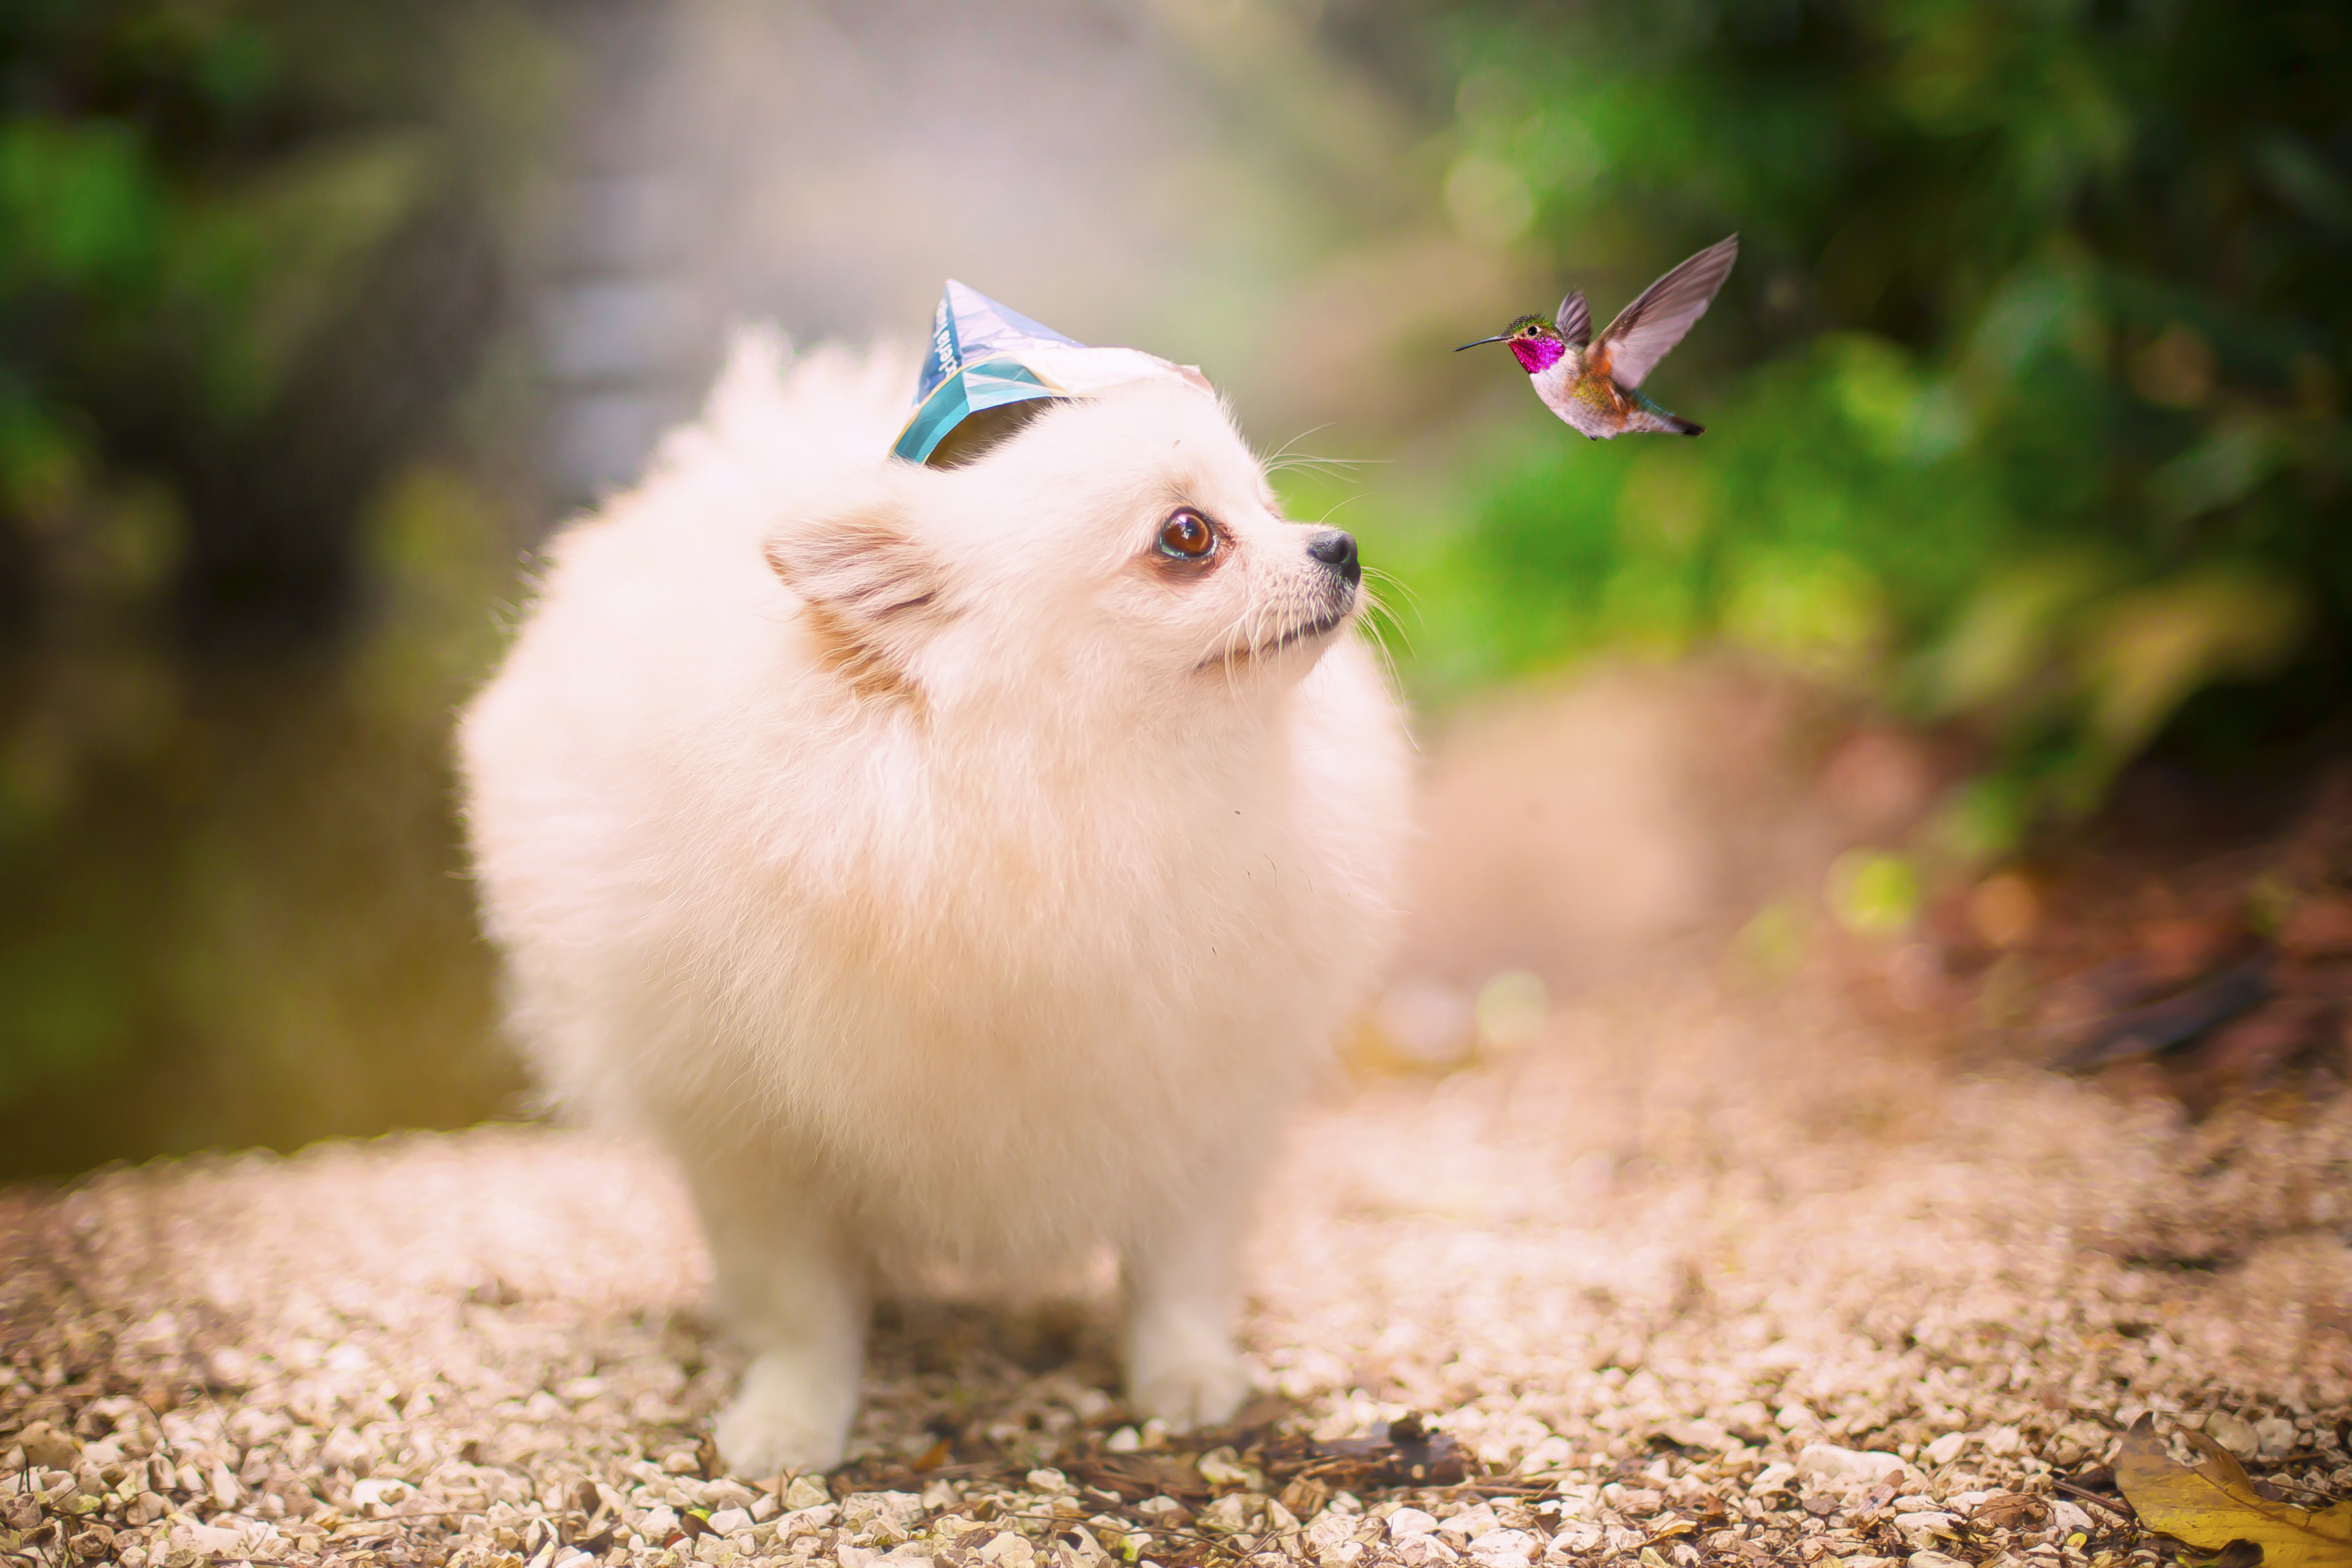 The hummingbird and the dog